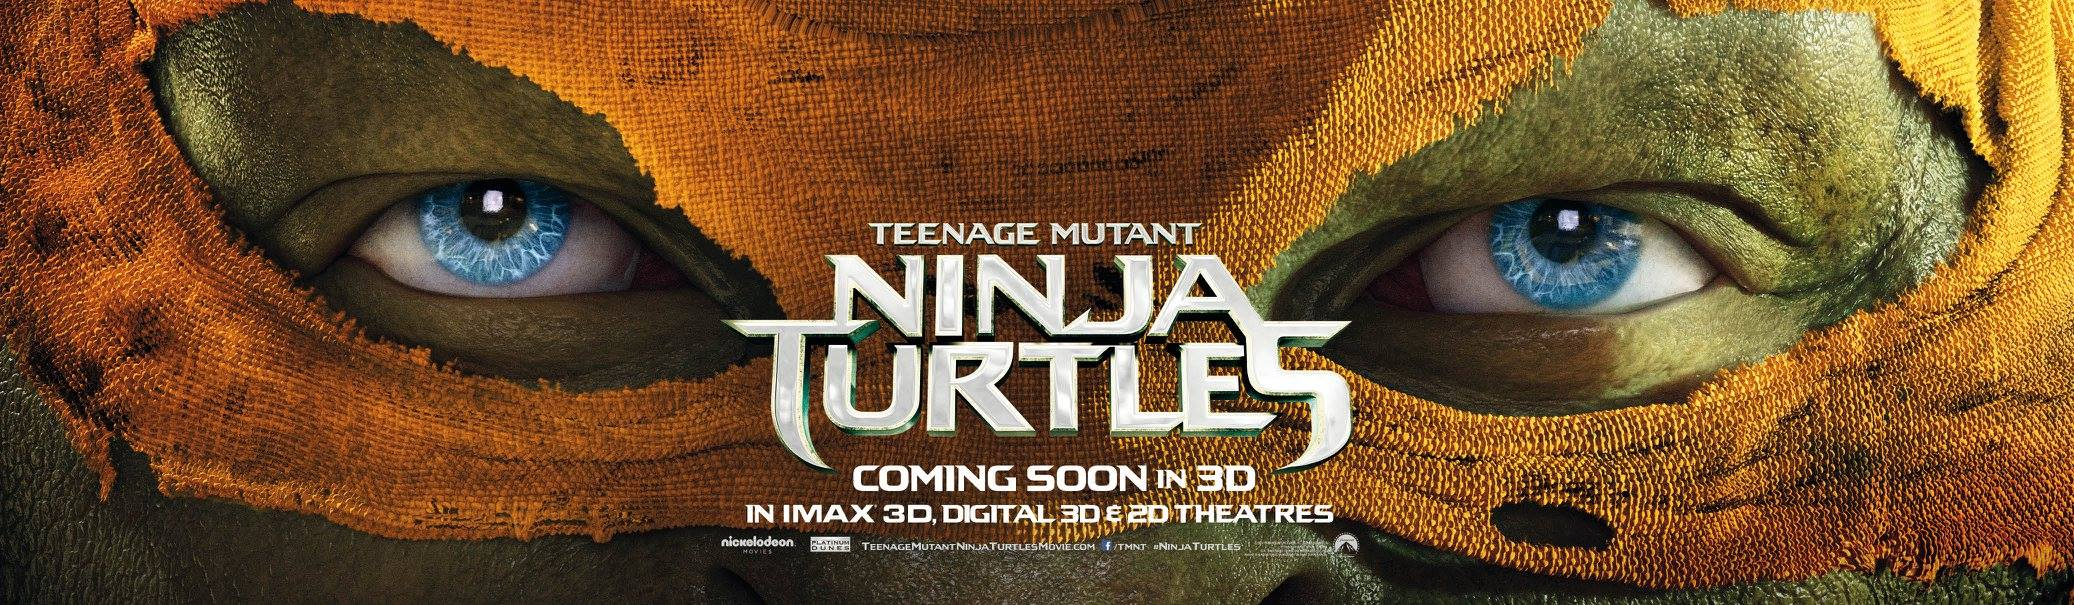 TEENAGE MUTANT NINJA TURTLES-Official Poster Banner PROMO XLG-04AGOSTO2014-03